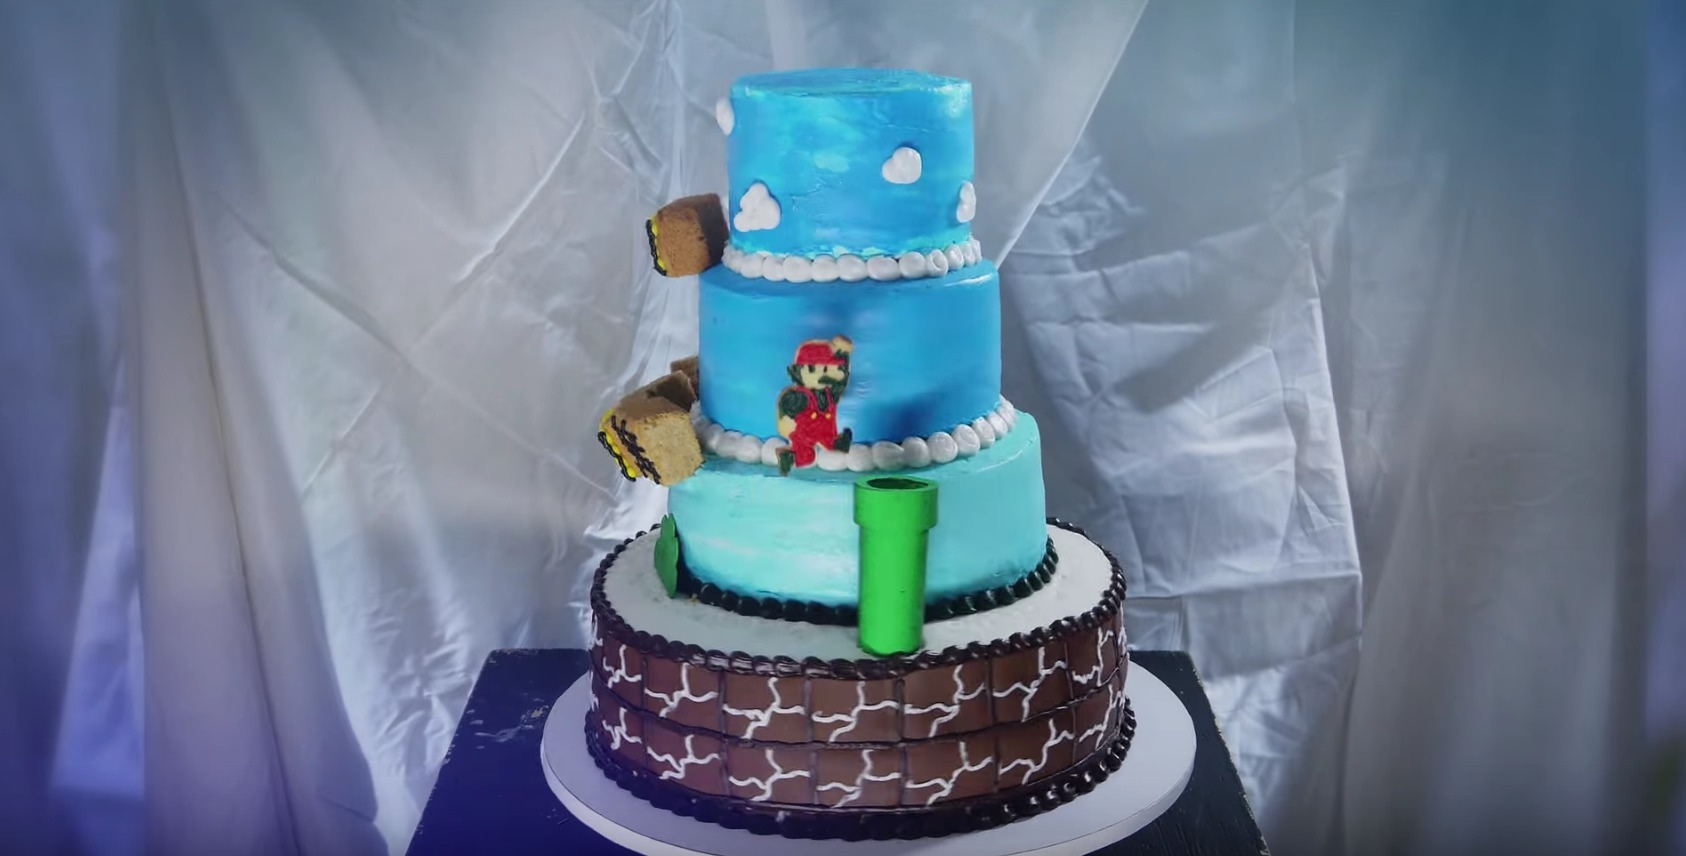 Geeking out over this amazing Super Mario Bros. cake animation